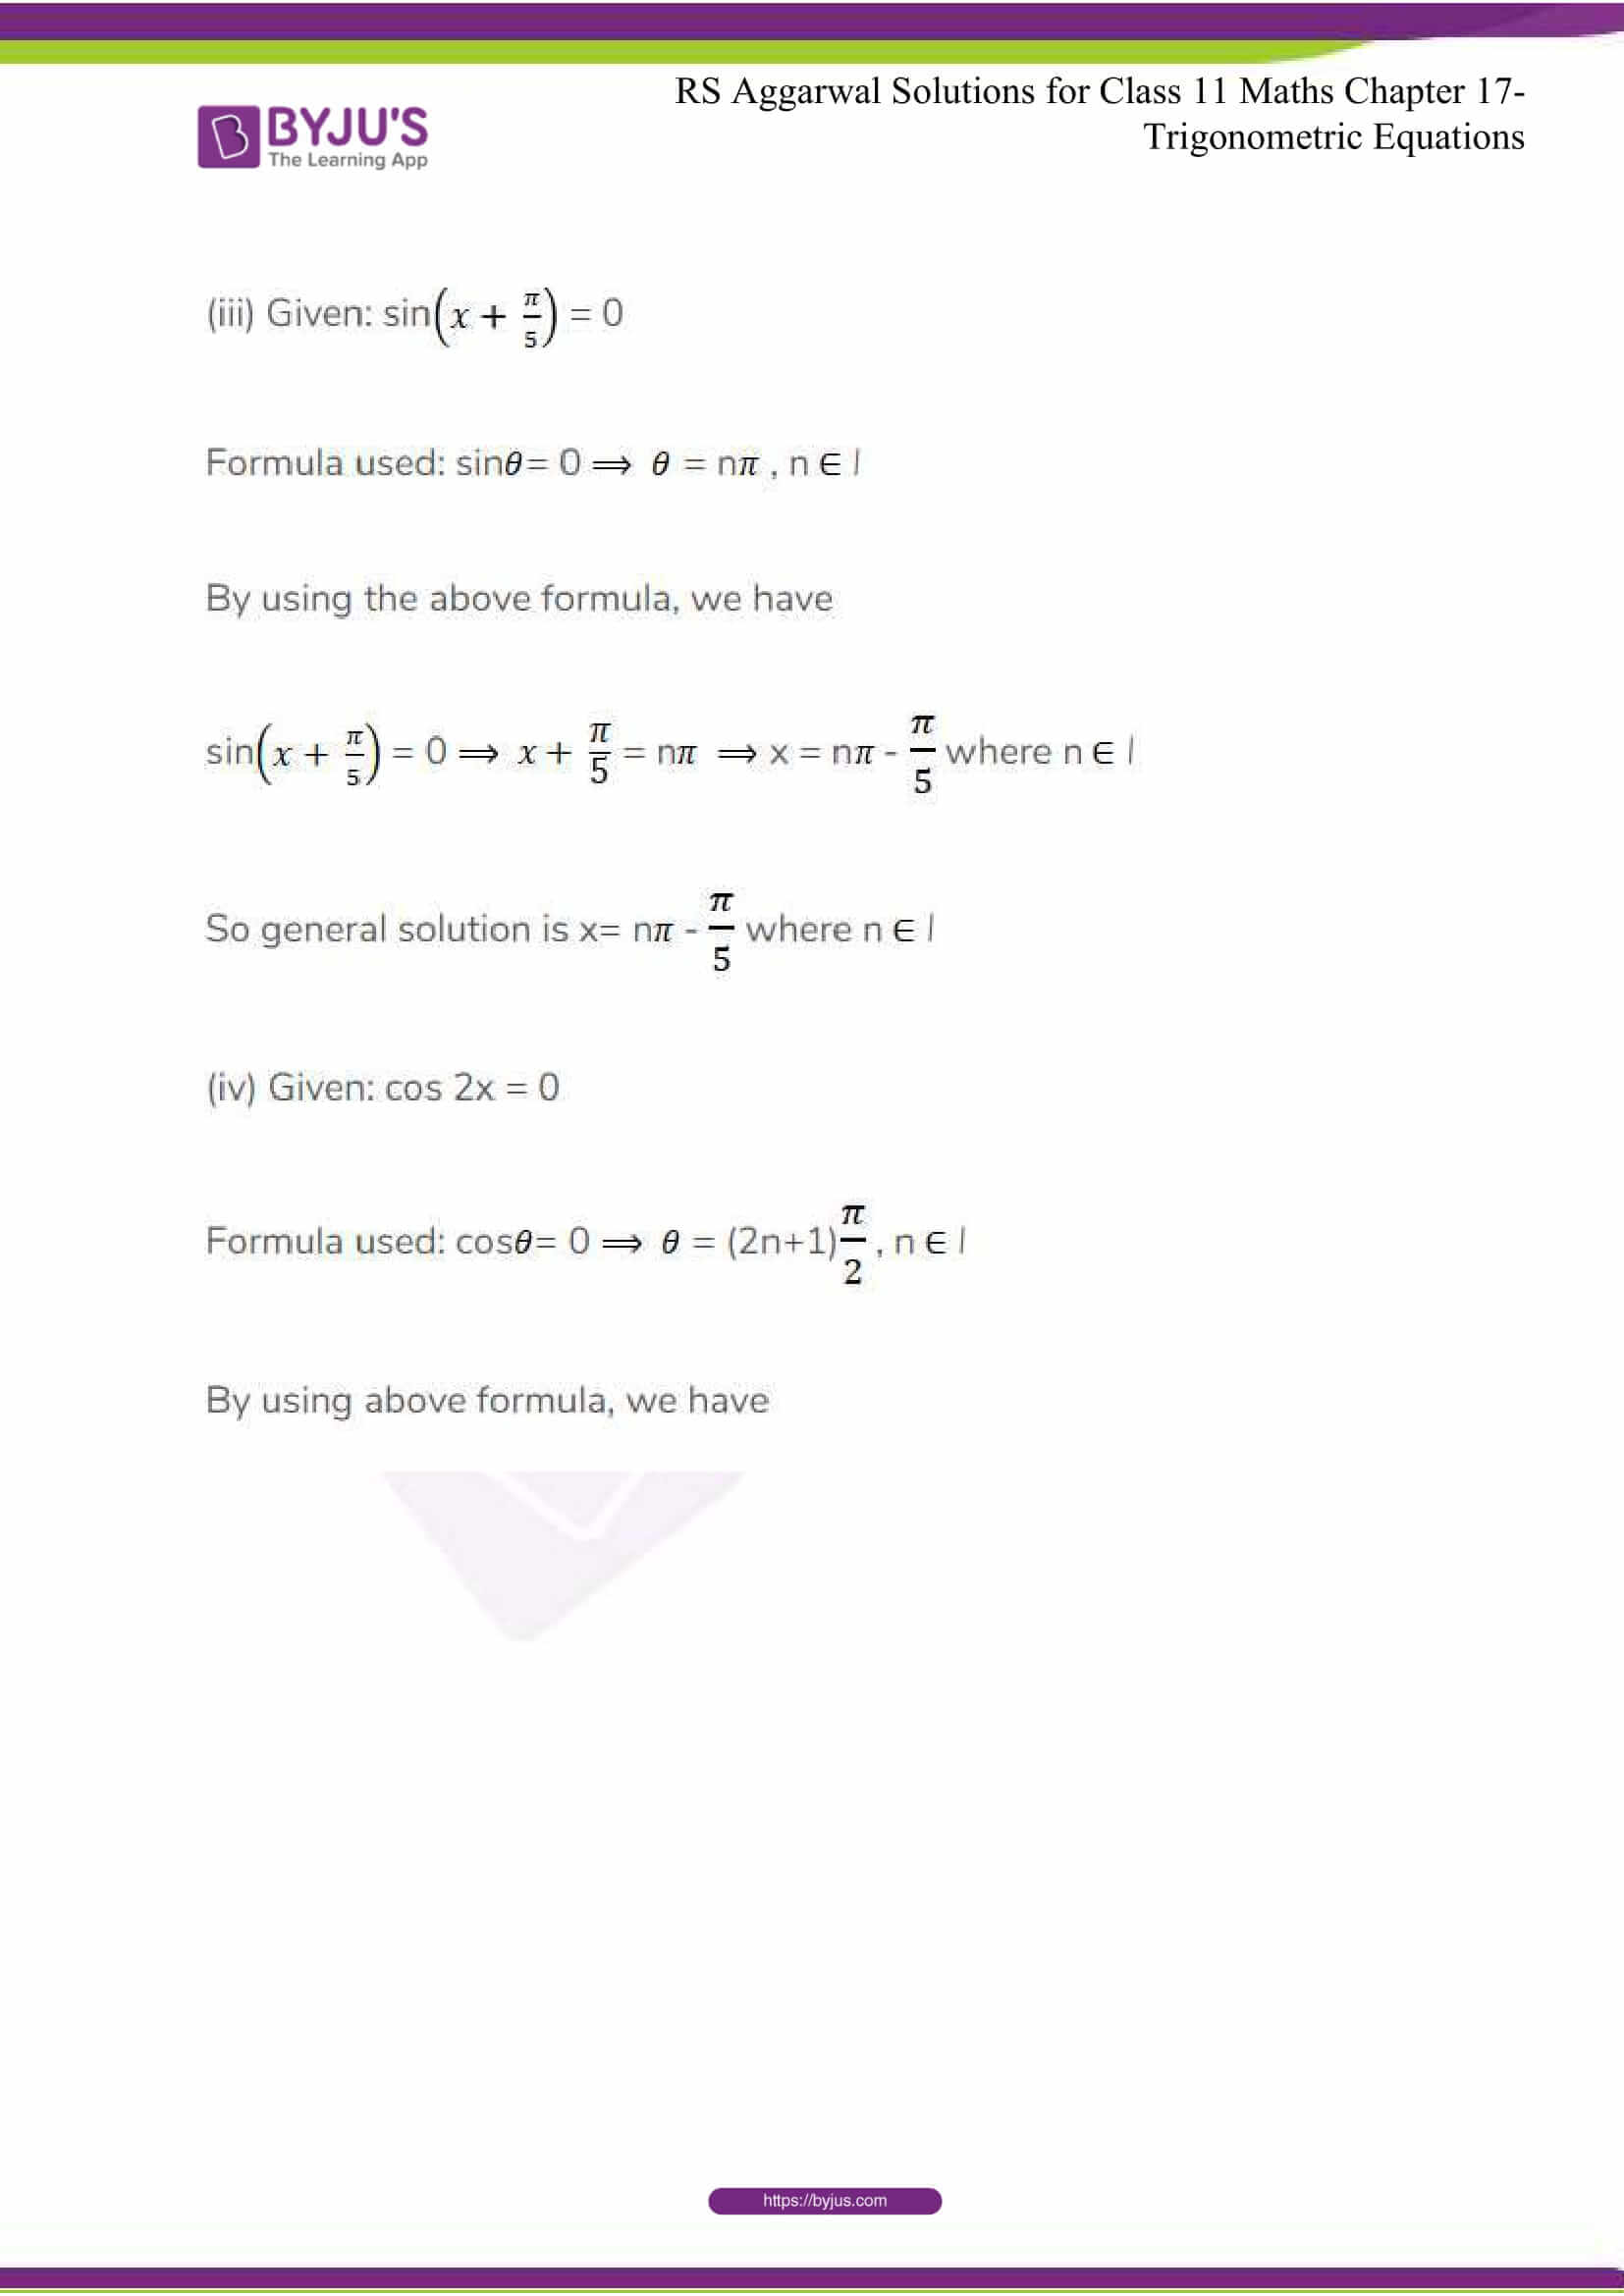 rsaggarwal solutions class 11 maths chapter 17 17